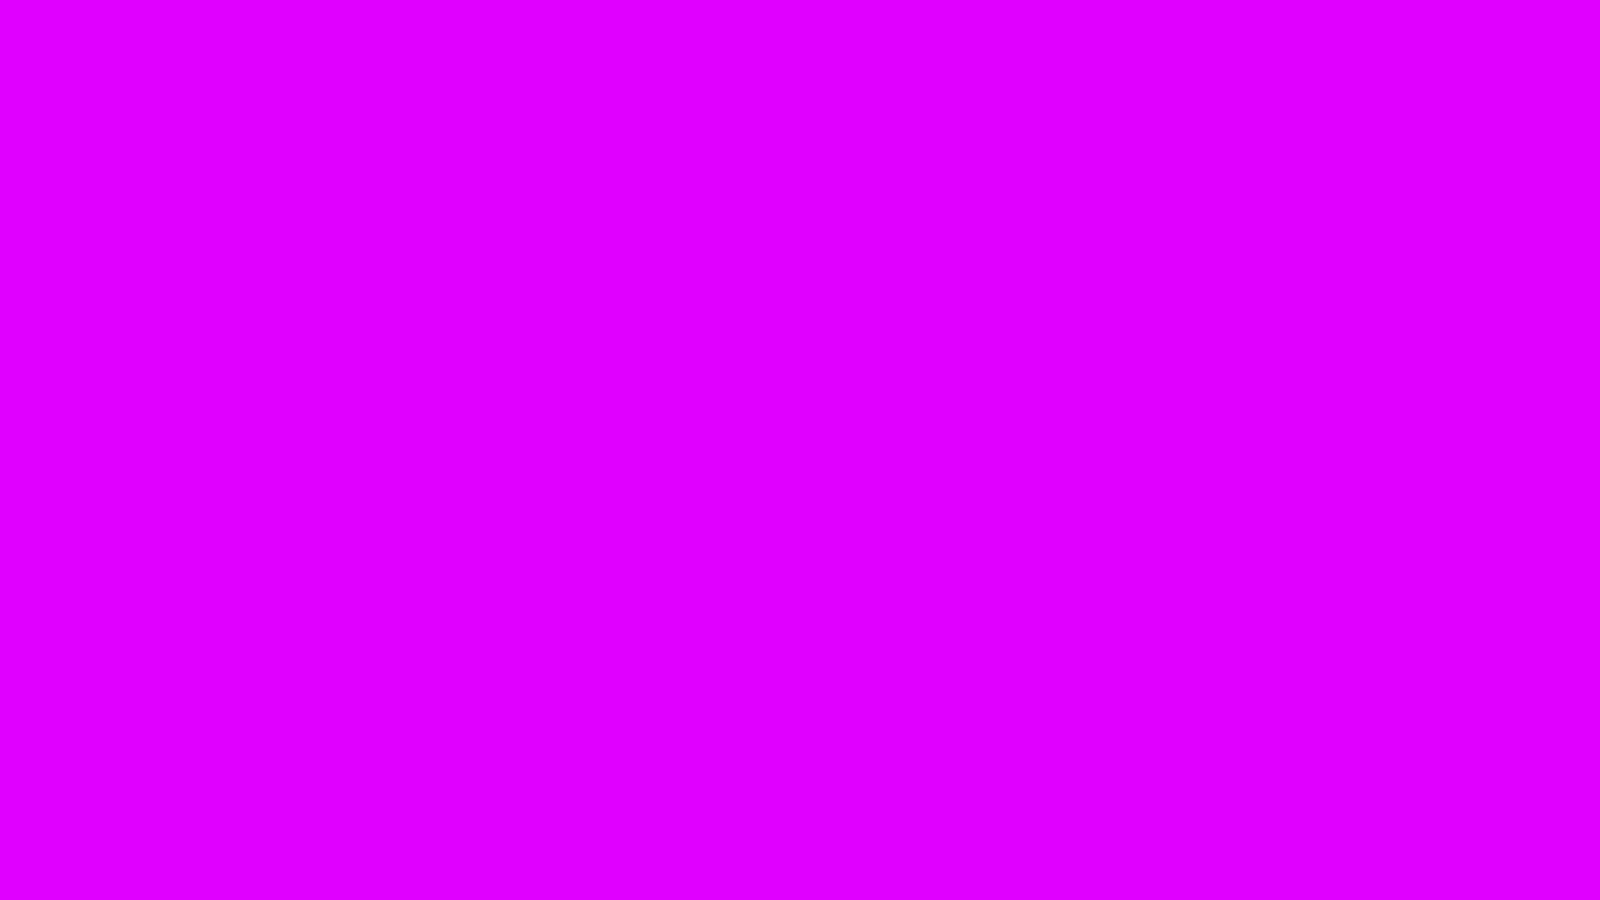 1600x900 Phlox Solid Color Background